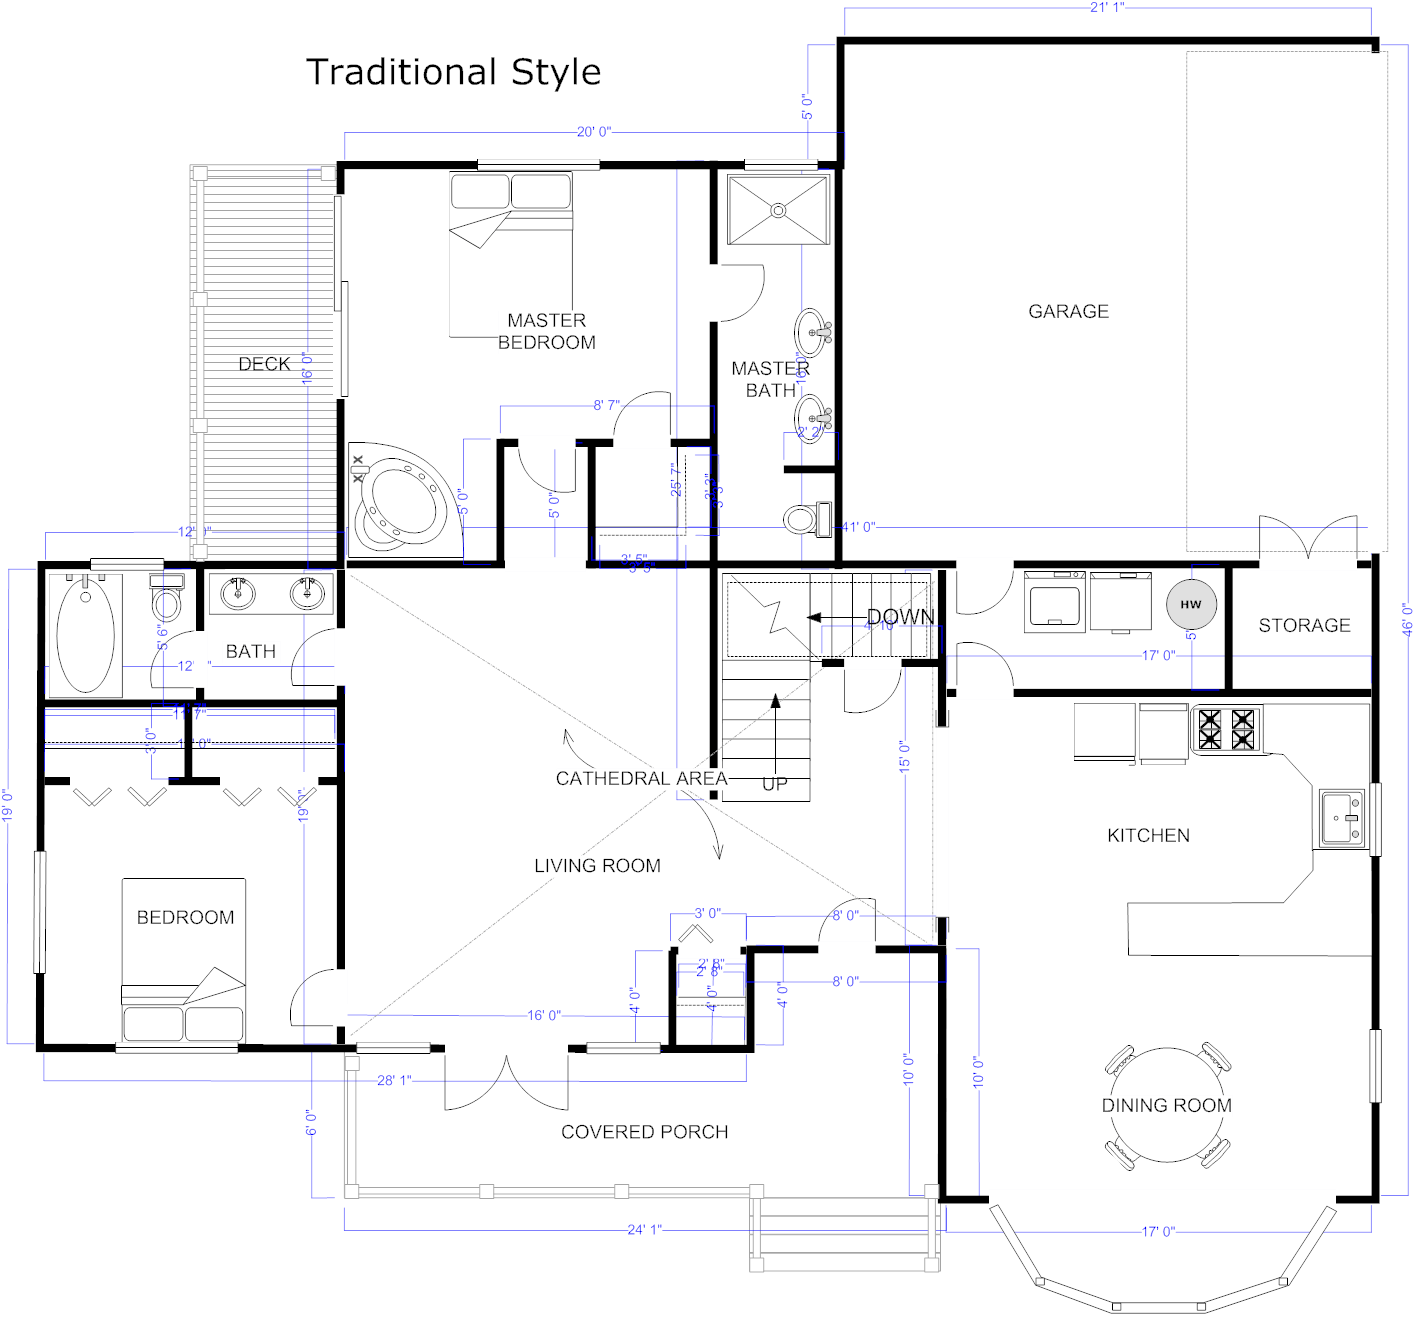 Home design templates etamemibawa home design templates malvernweather Gallery